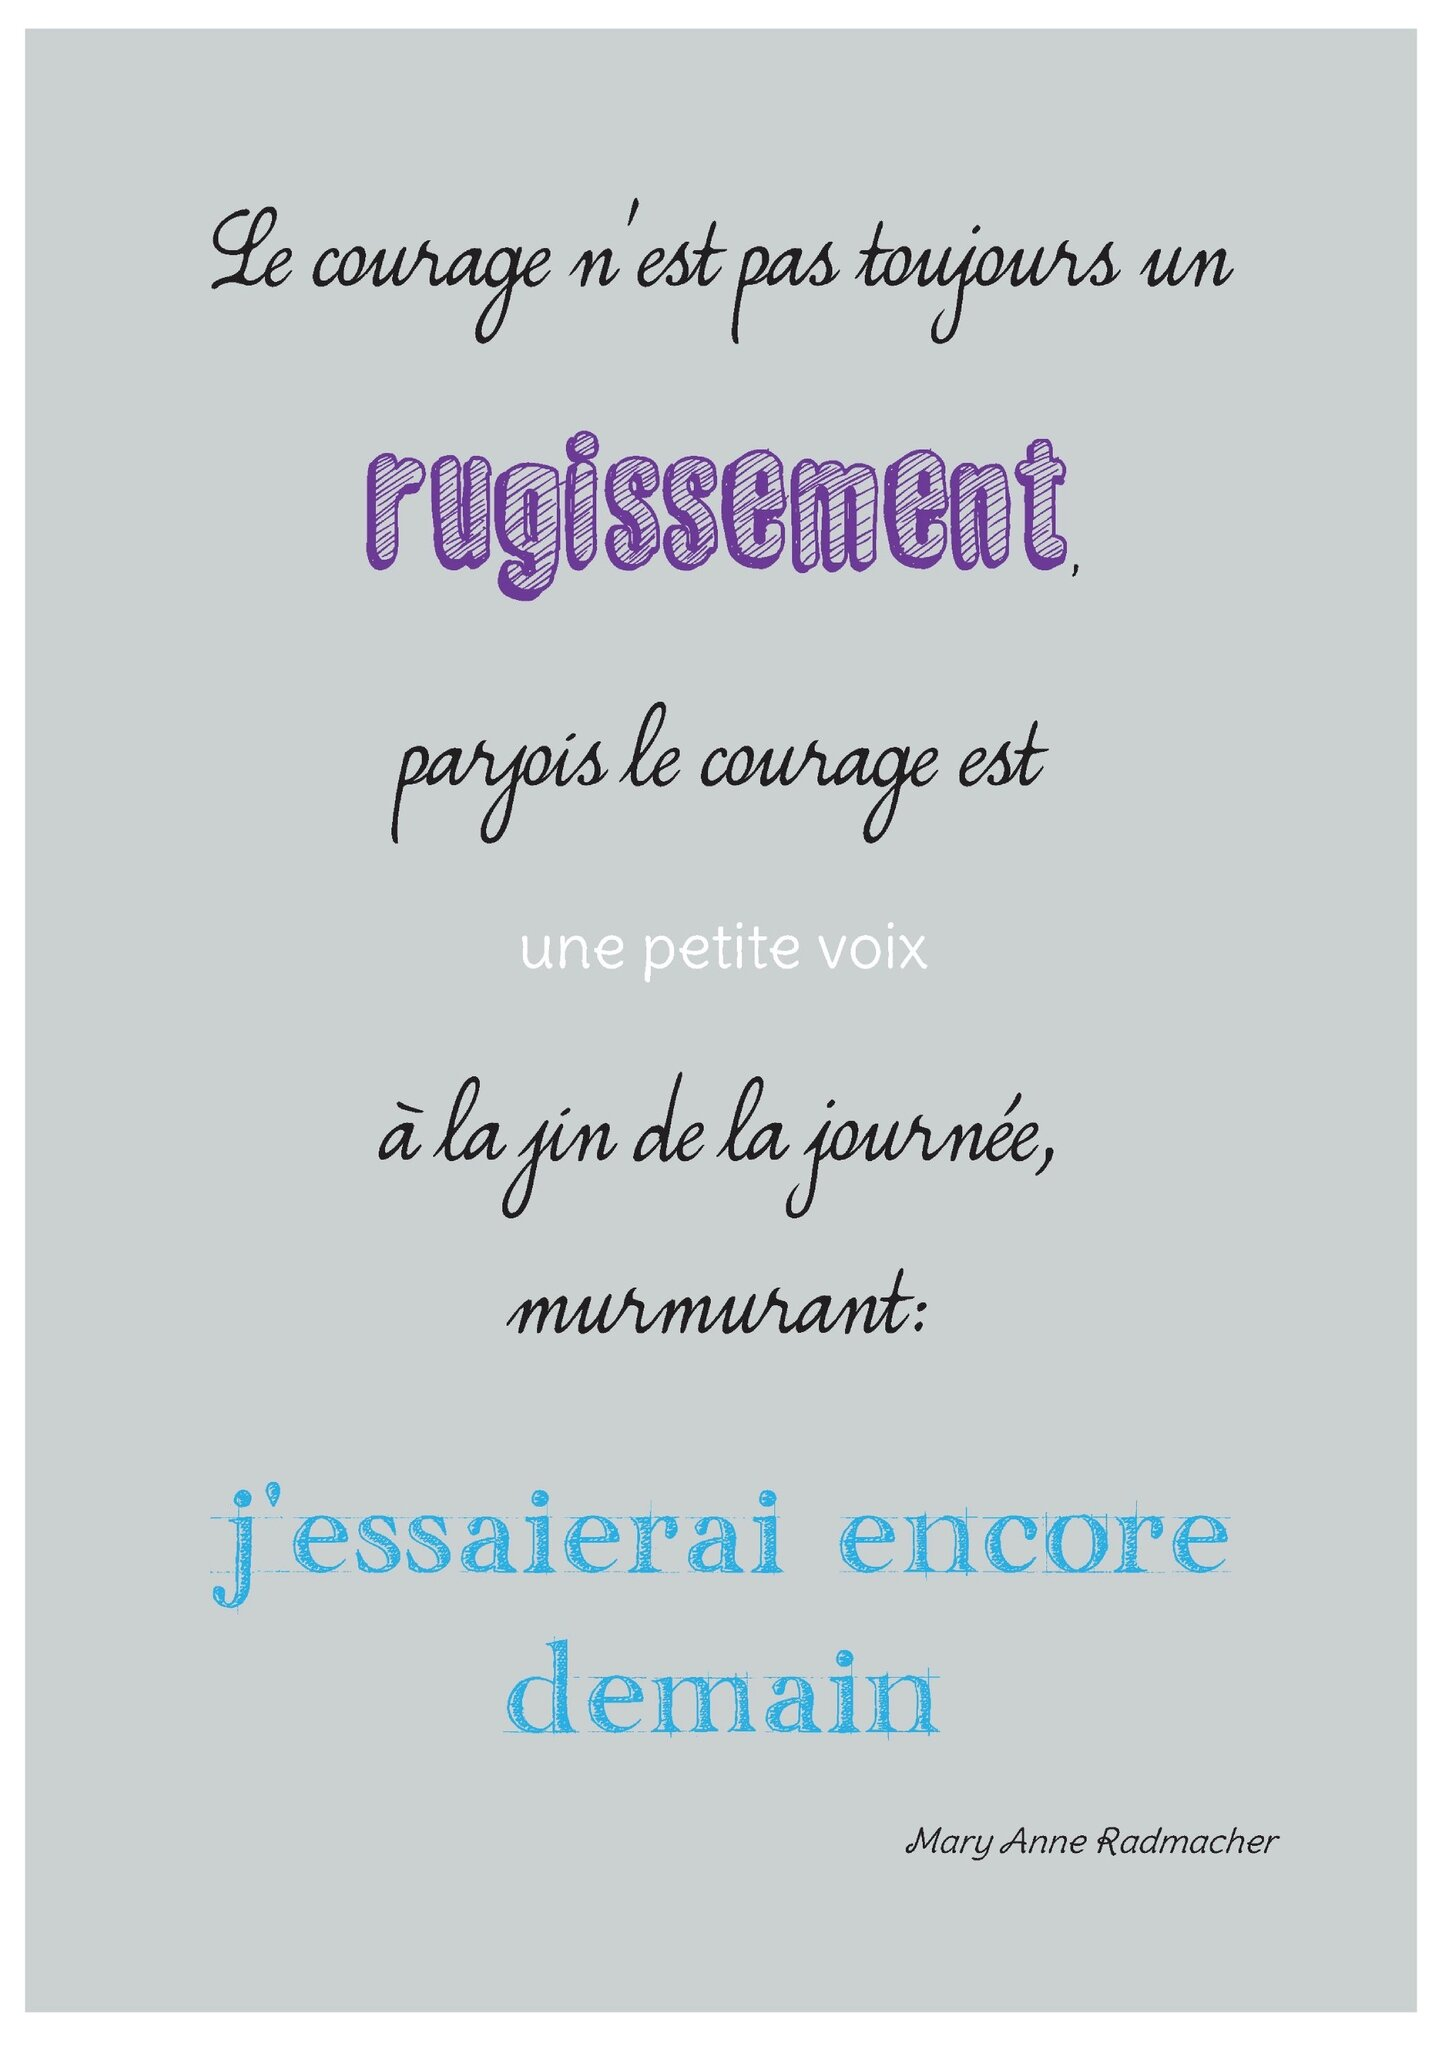 Movie Love Quotes: Citations D'amour En Anglais Avec Traduction